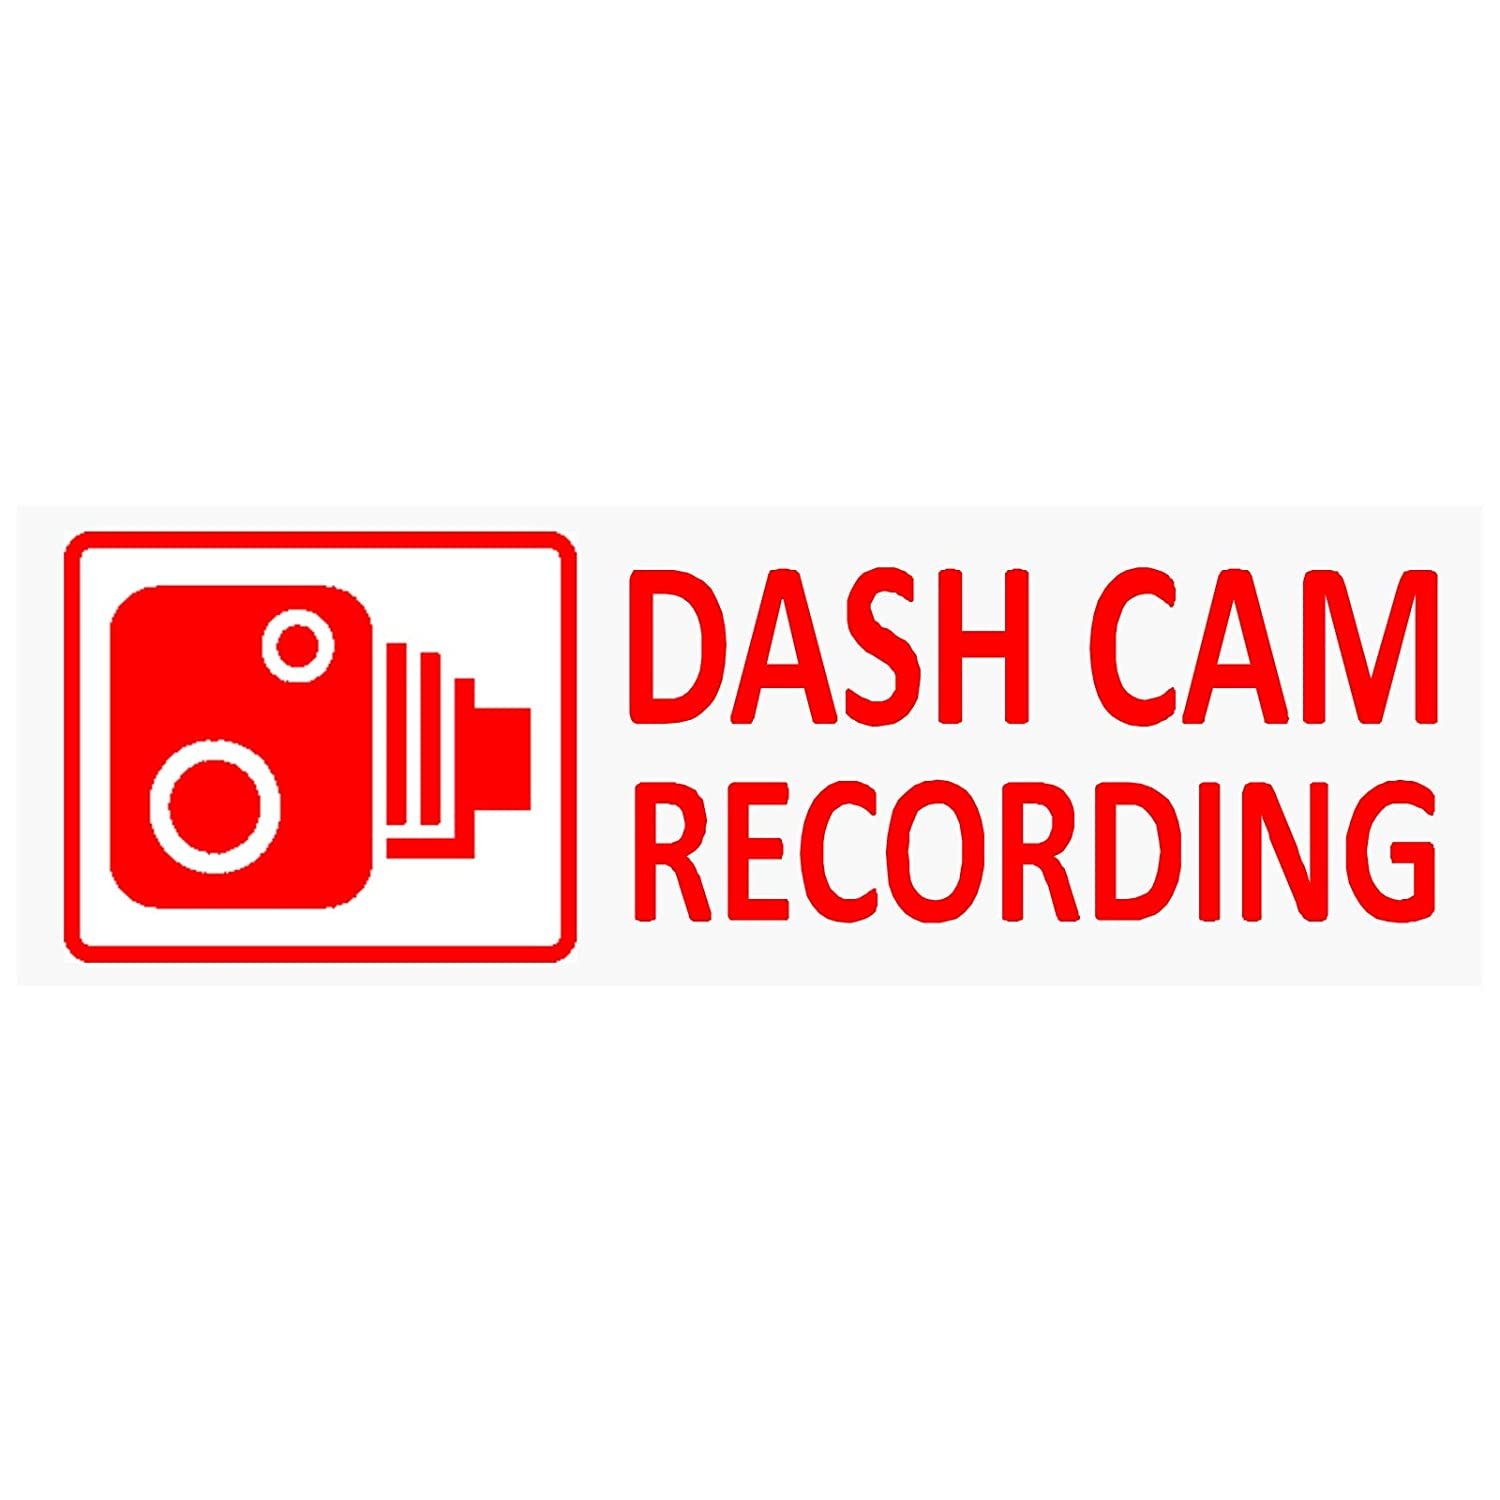 5 x DASH CAM Recording-RED/CLEAR-30mm x 87mm-Stickers-Vehicle Camera Security Warning Dash Cam Signs-CCTV, Car, Van, Truck, Taxi, Mini Cab, Bus, Coach, Notice, Deterrent, Protection, Protect, Secure Platinum Place